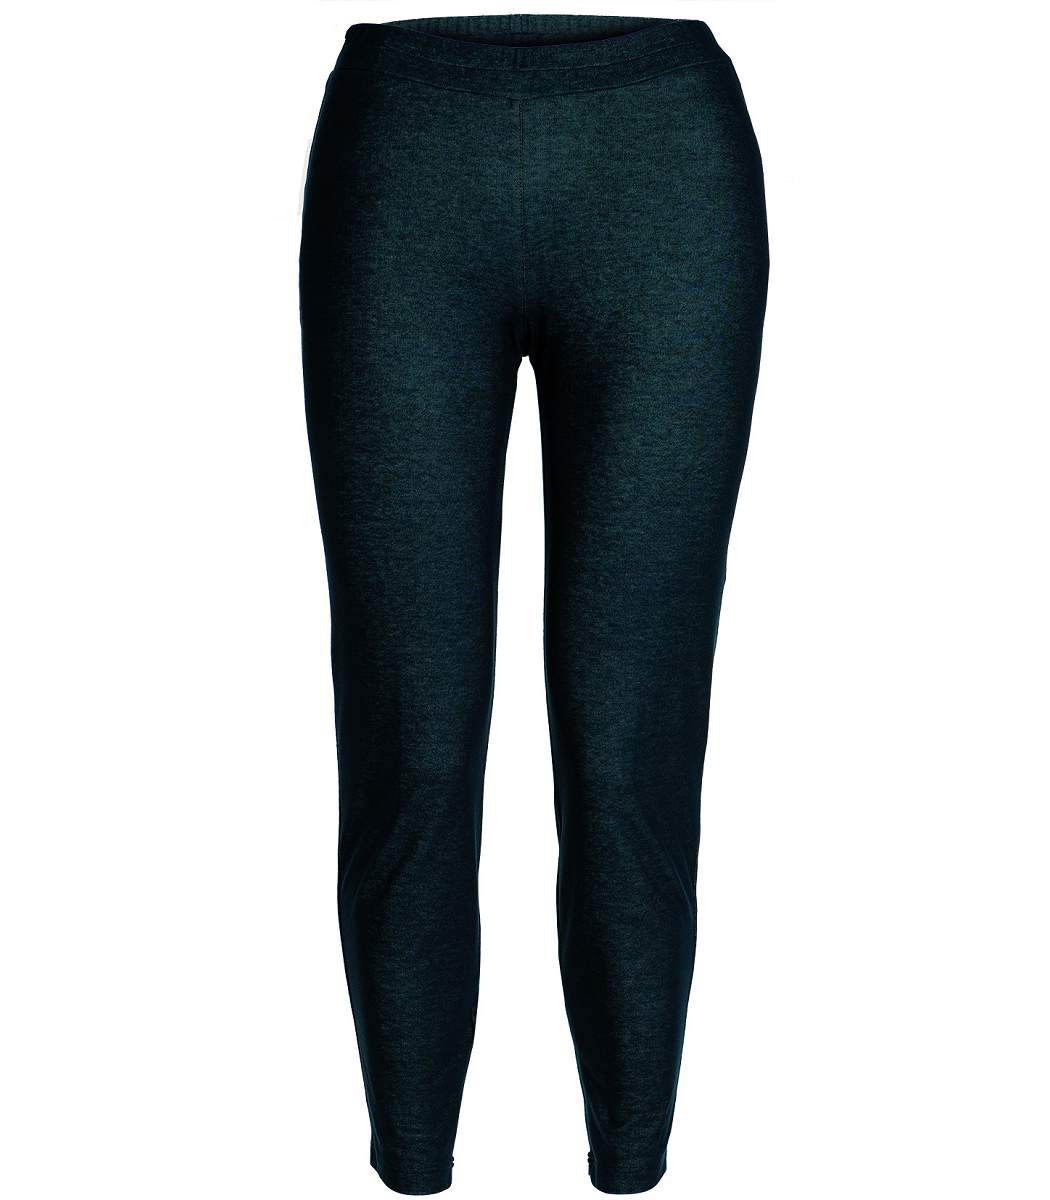 Turn to Gap for a Jeans & Leggings collection that is well-made and fashionable. Shop the Jeans & Leggings assortment to find the latest designs and popular color palettes.